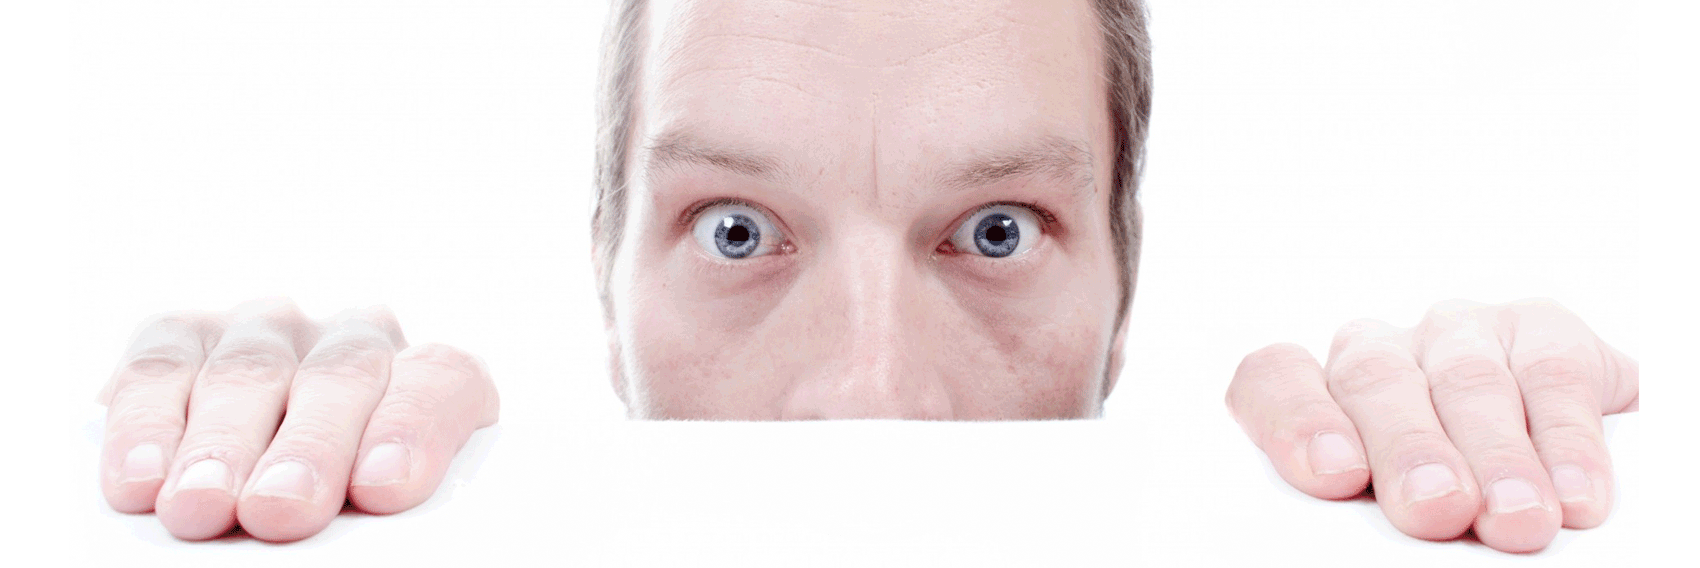 Can Hypnotherapy Treat Fears?